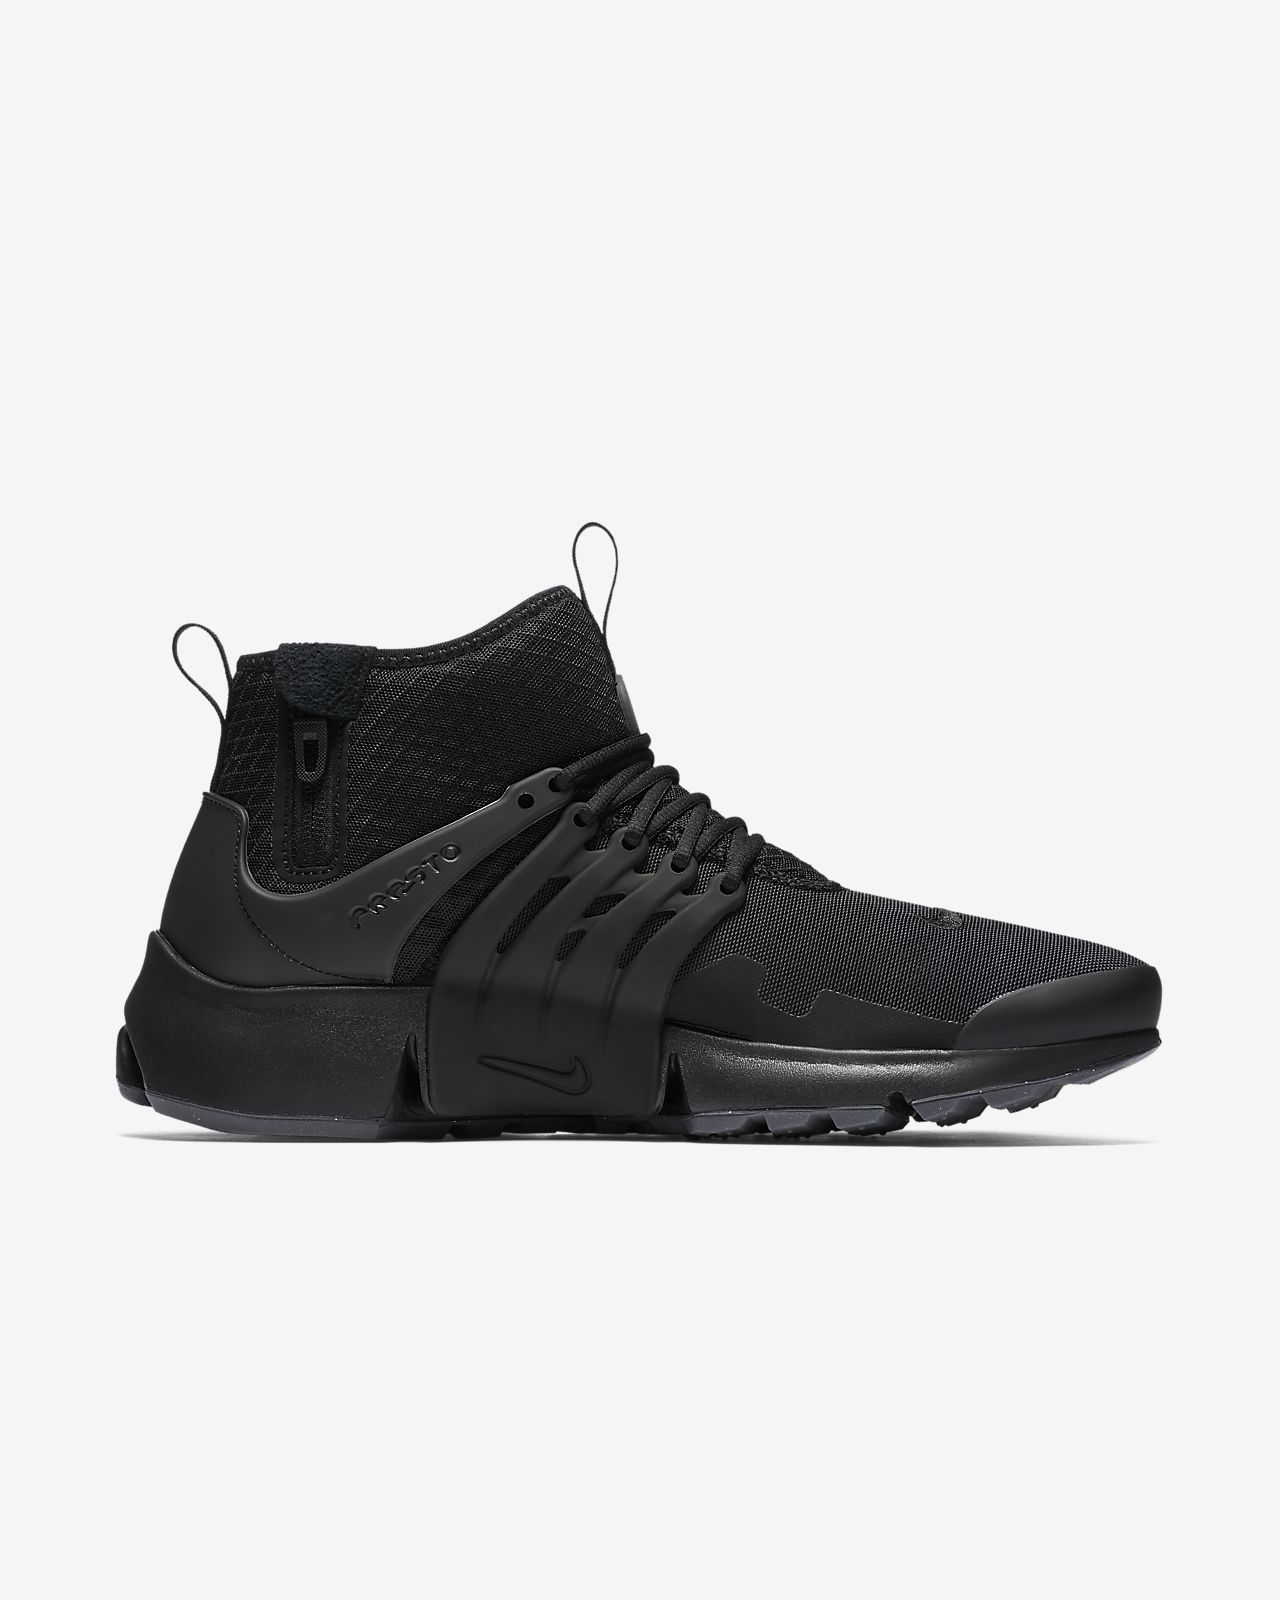 ... Nike Air Presto Mid Utility Men's Shoe